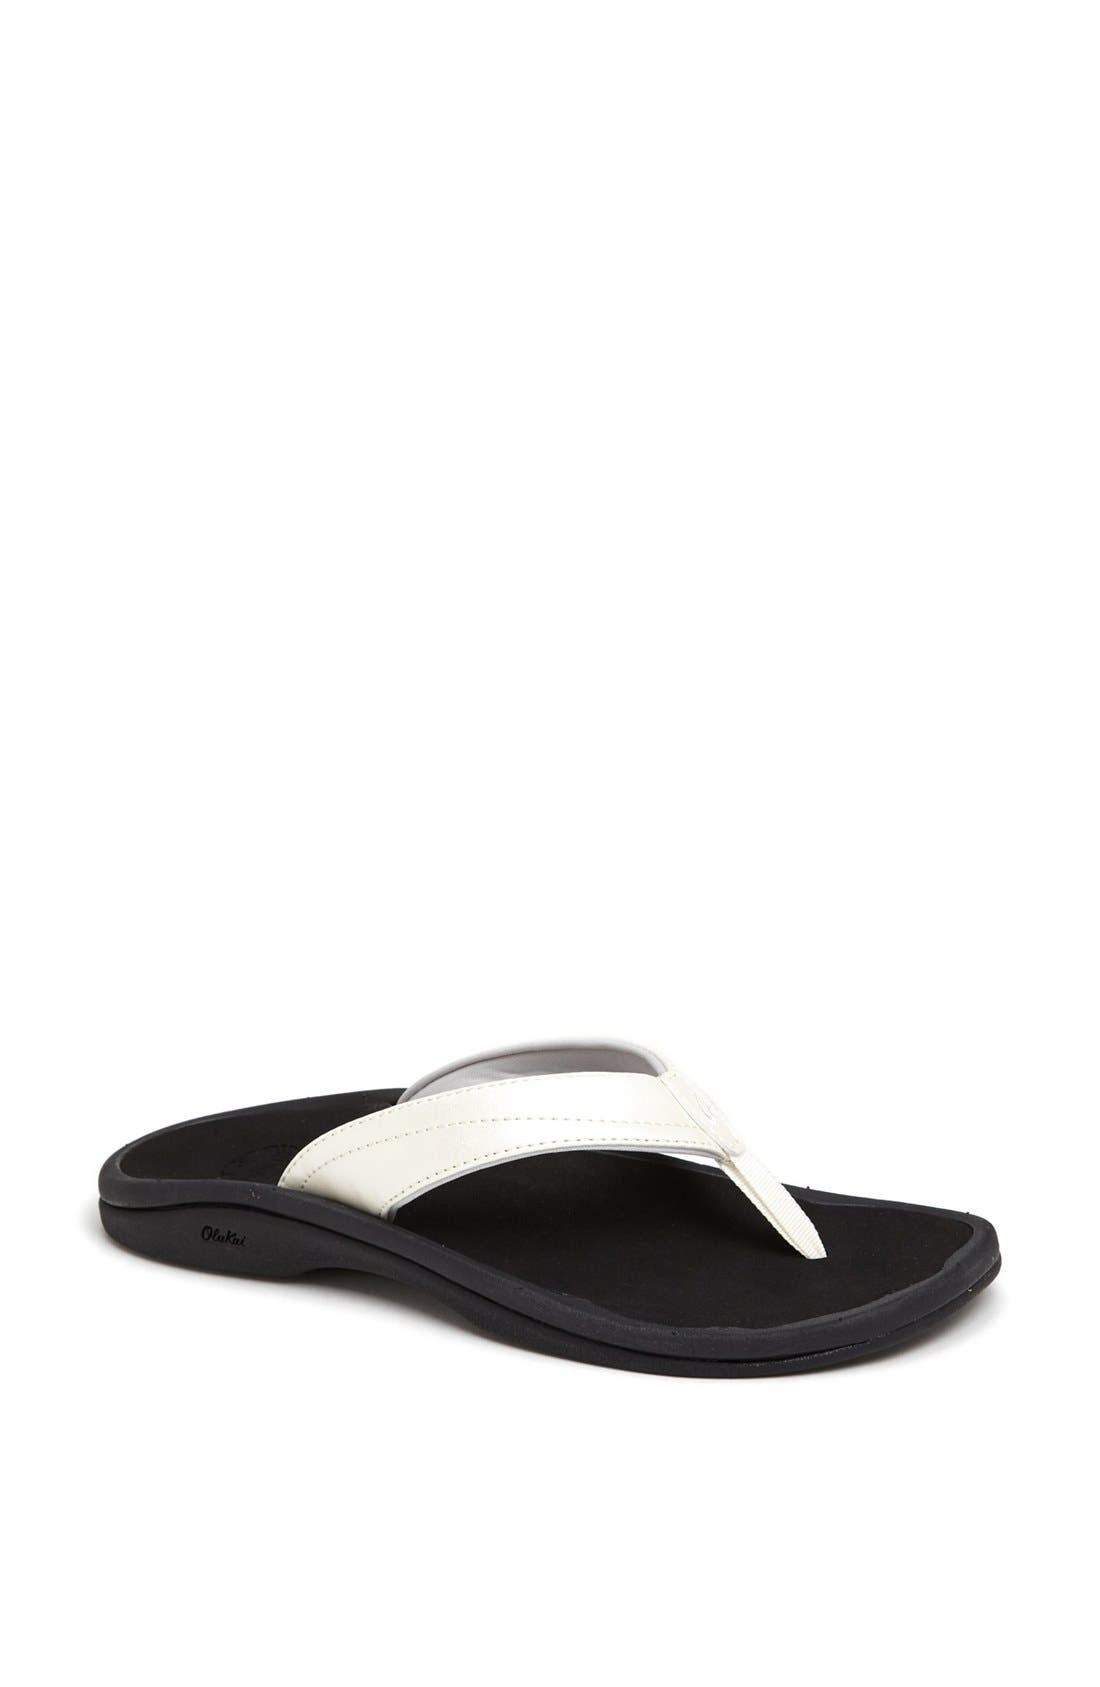 Alternate Image 1 Selected - OluKai 'Ohana' Sandal (Women) (Regular Retail Price: $64.95)